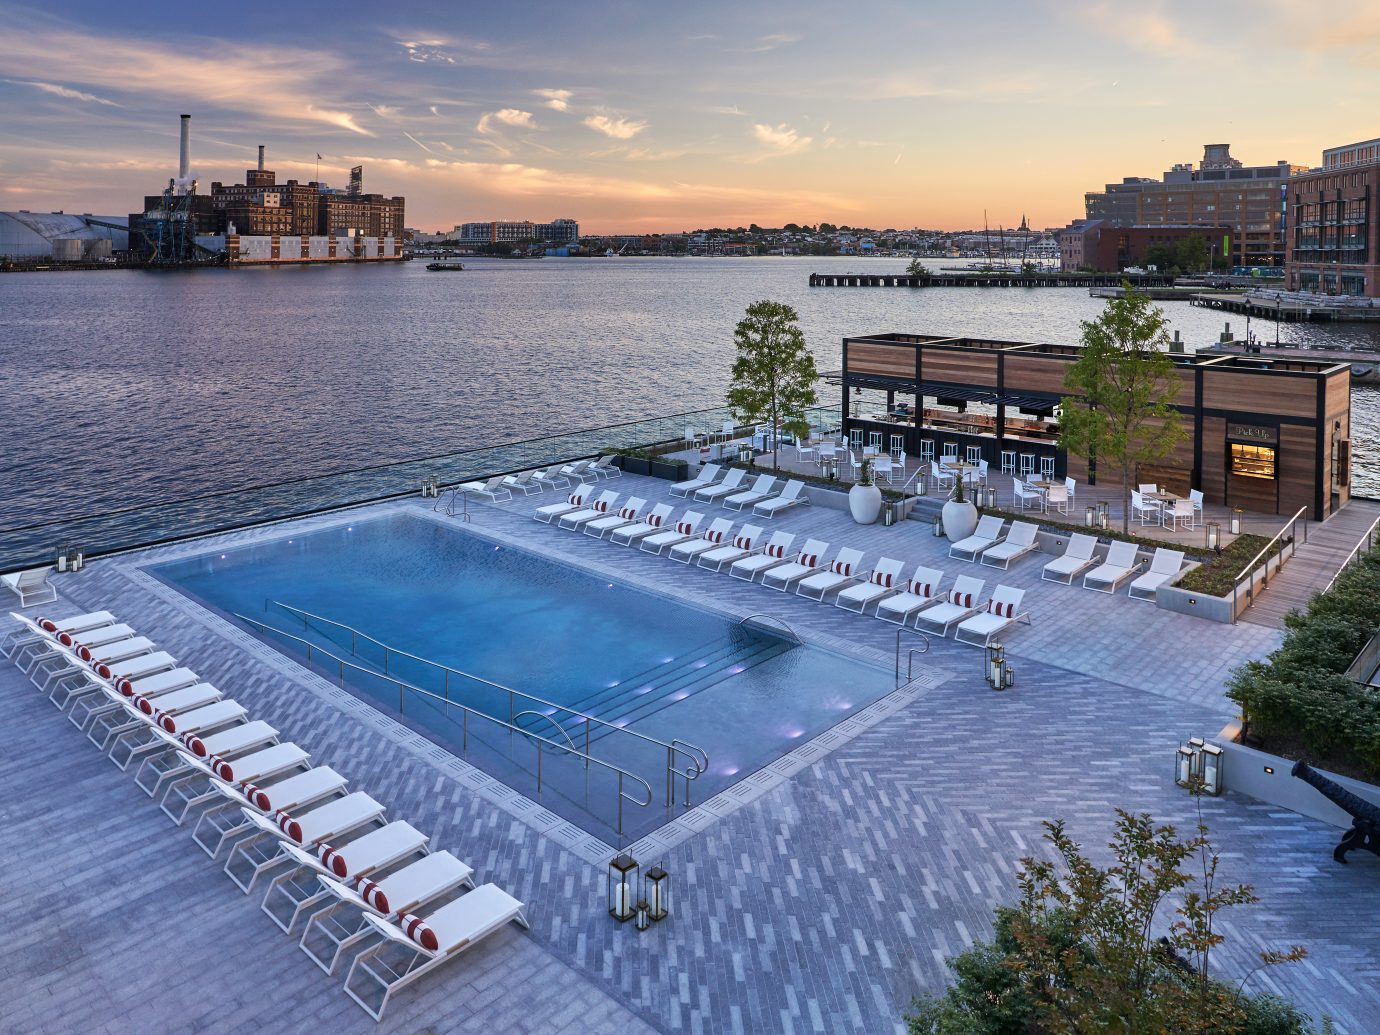 Pool Bar & Grill at the Sagamore Pendry Baltimore